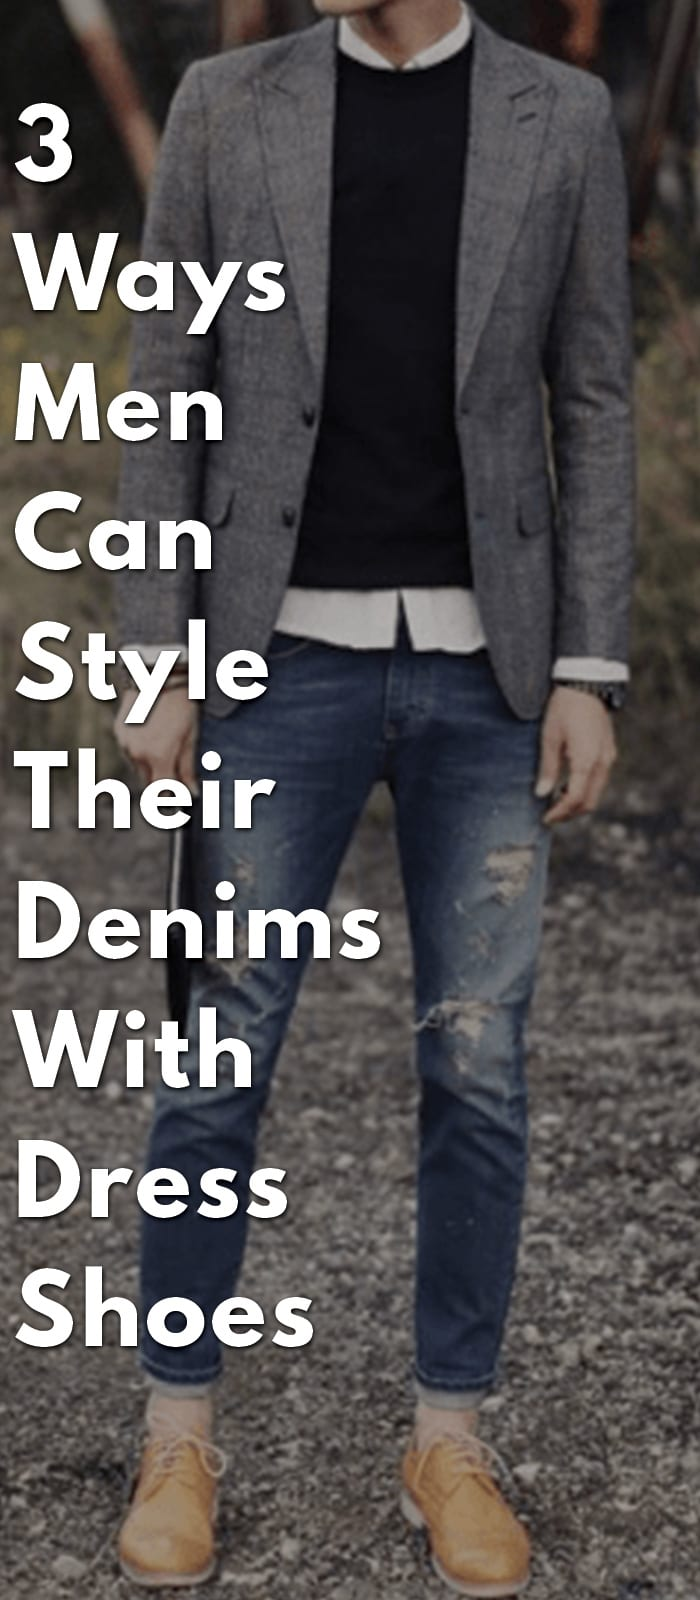 3-Ways-Men-Can-Style-Their-Denims-With-Dress-Shoes